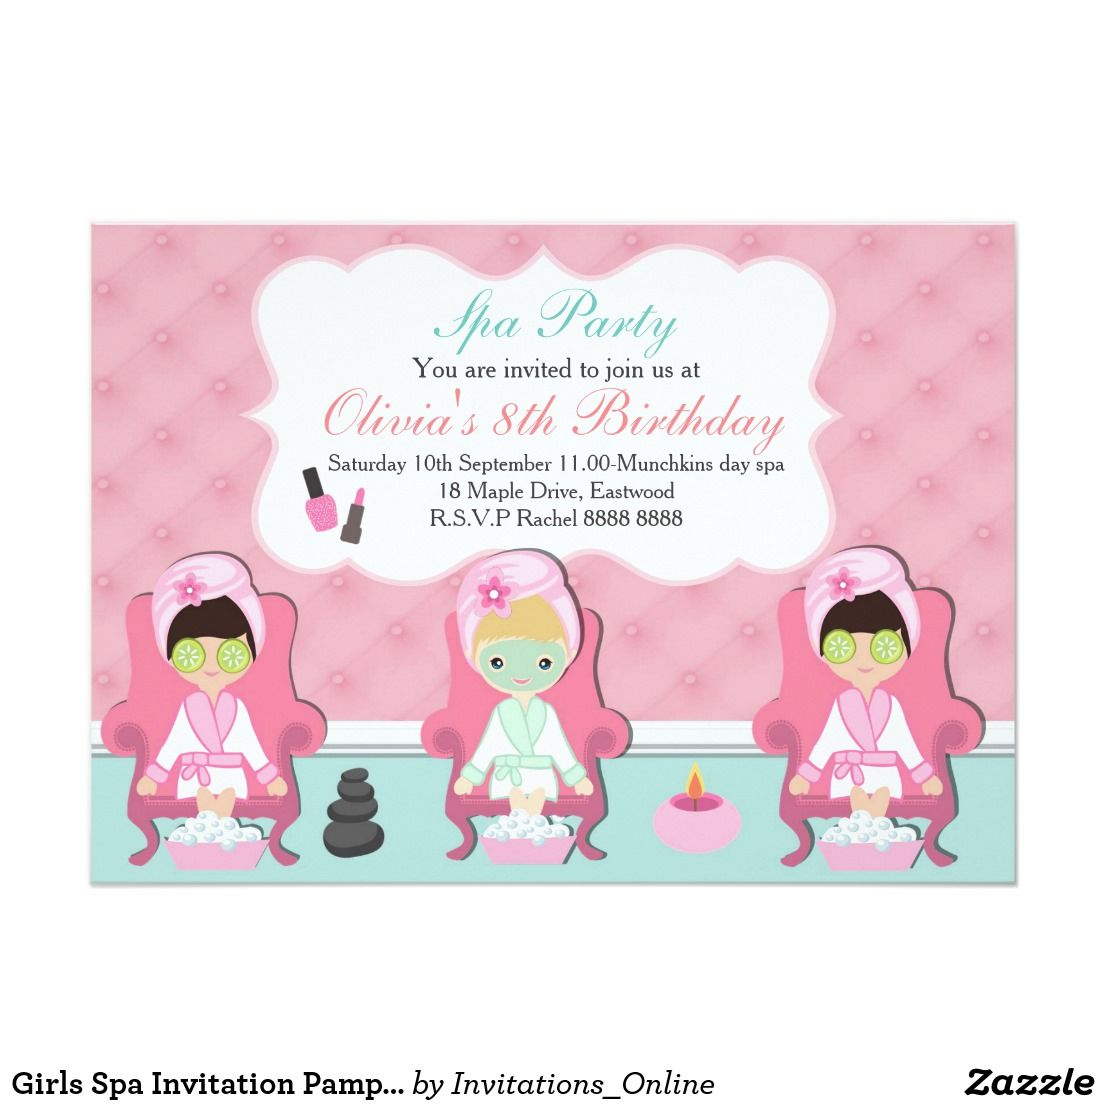 Girls Spa Invitation Pamper party Invite | Pinterest | Pamper party ...